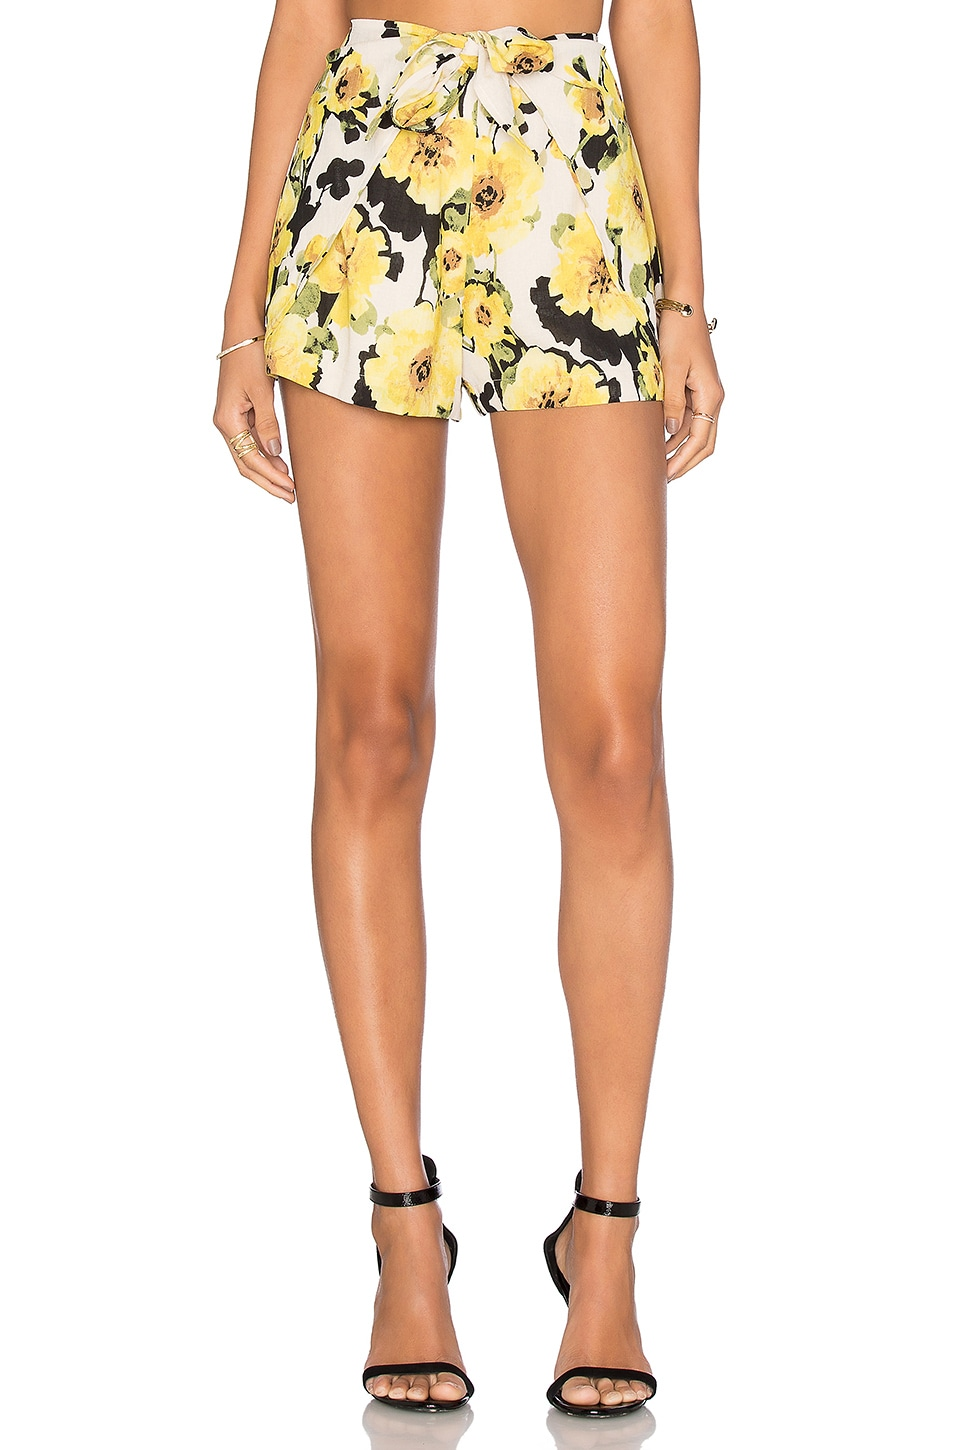 J.O.A. Floral Short in Yellow Multi